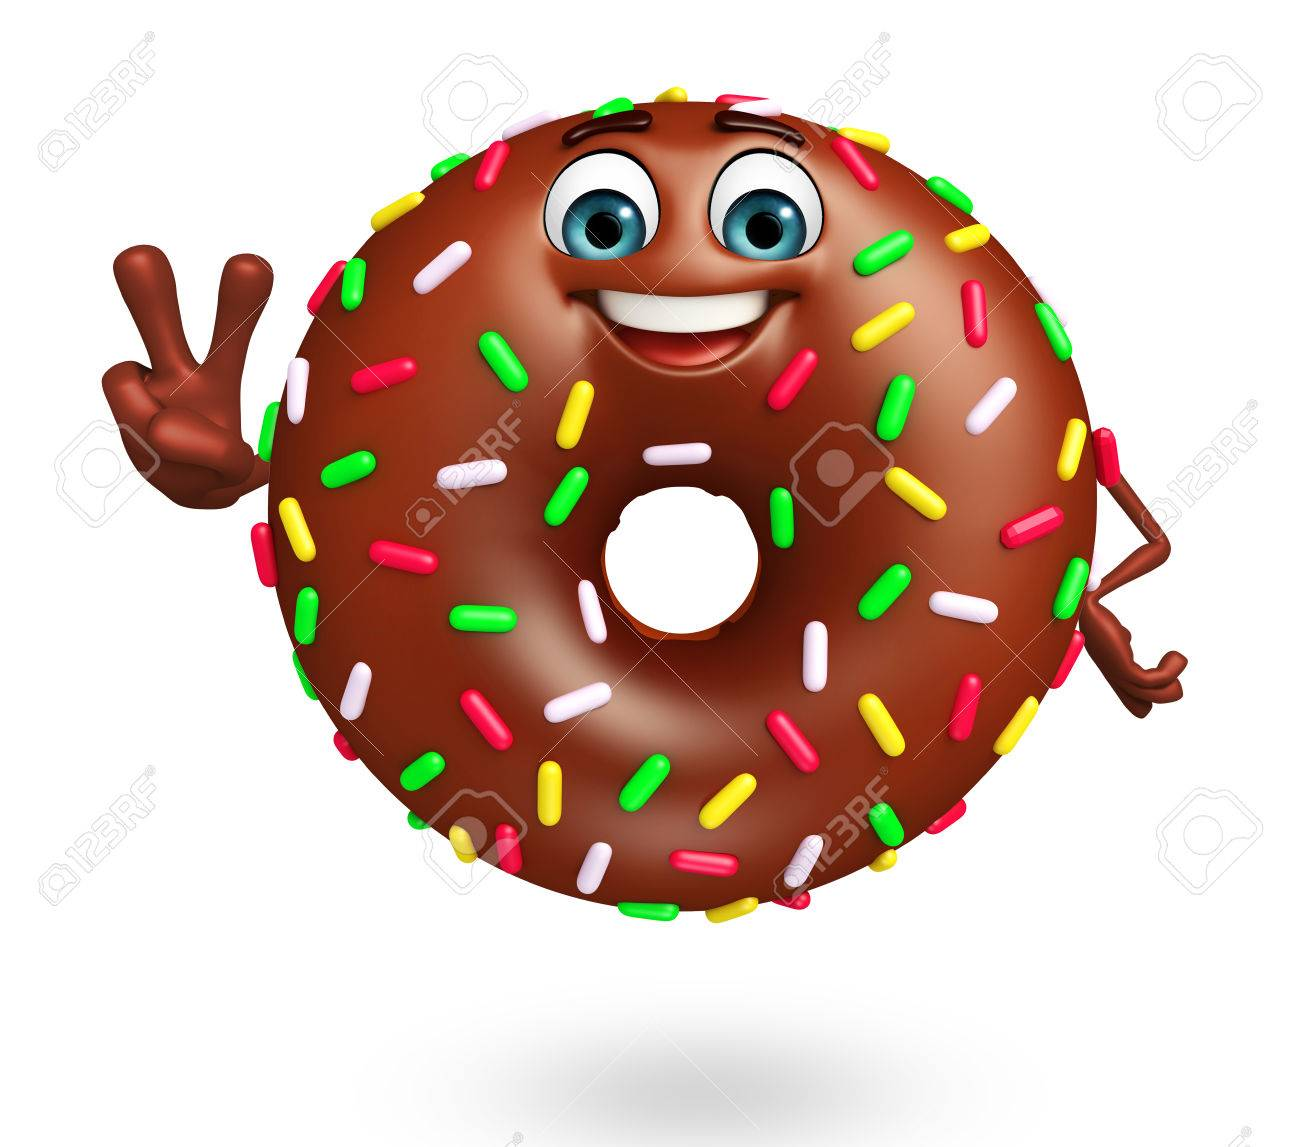 3d Rendered Illustration Of Donuts Cartoon Character Stock Photo